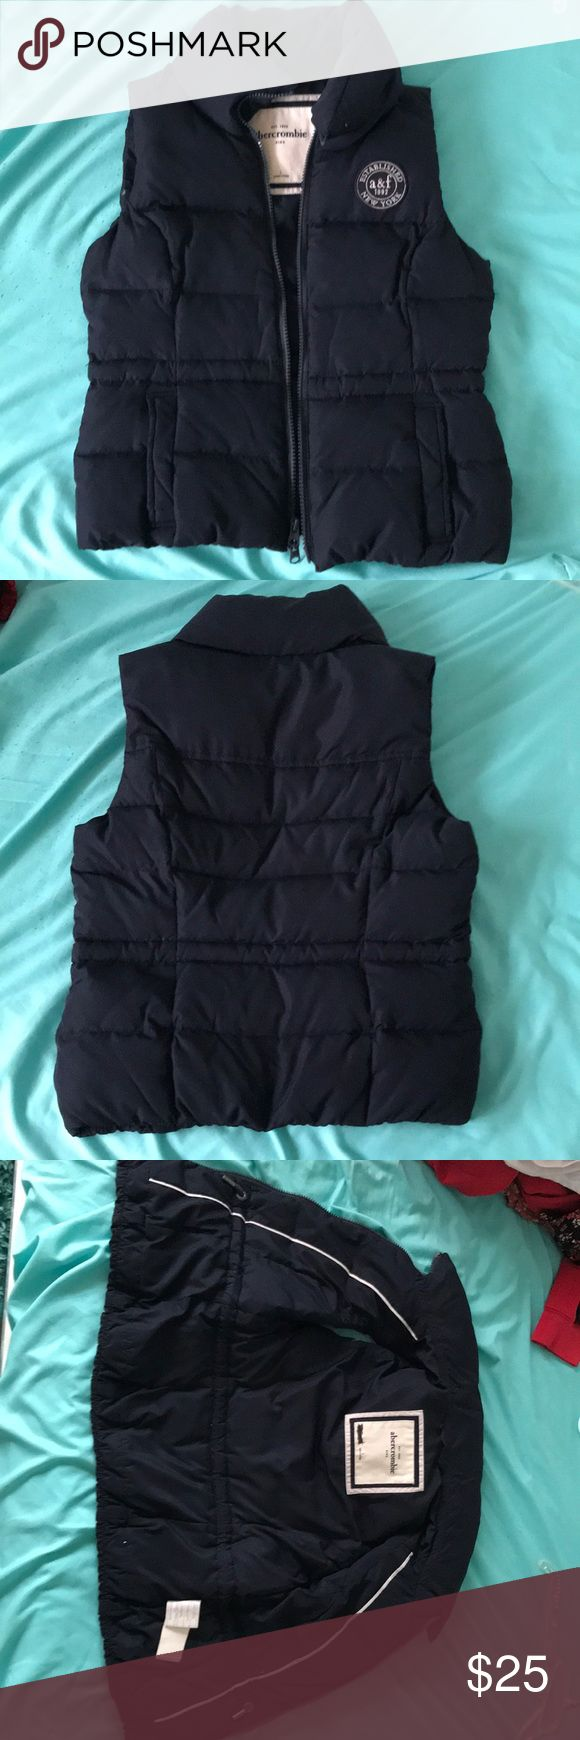 Abercrombie Kids navy blue bubble vest Abercrombie bubble vest in great condition, name scratched out on tag.  No stains or sign of distress abercrombie kids Jackets & Coats Vests